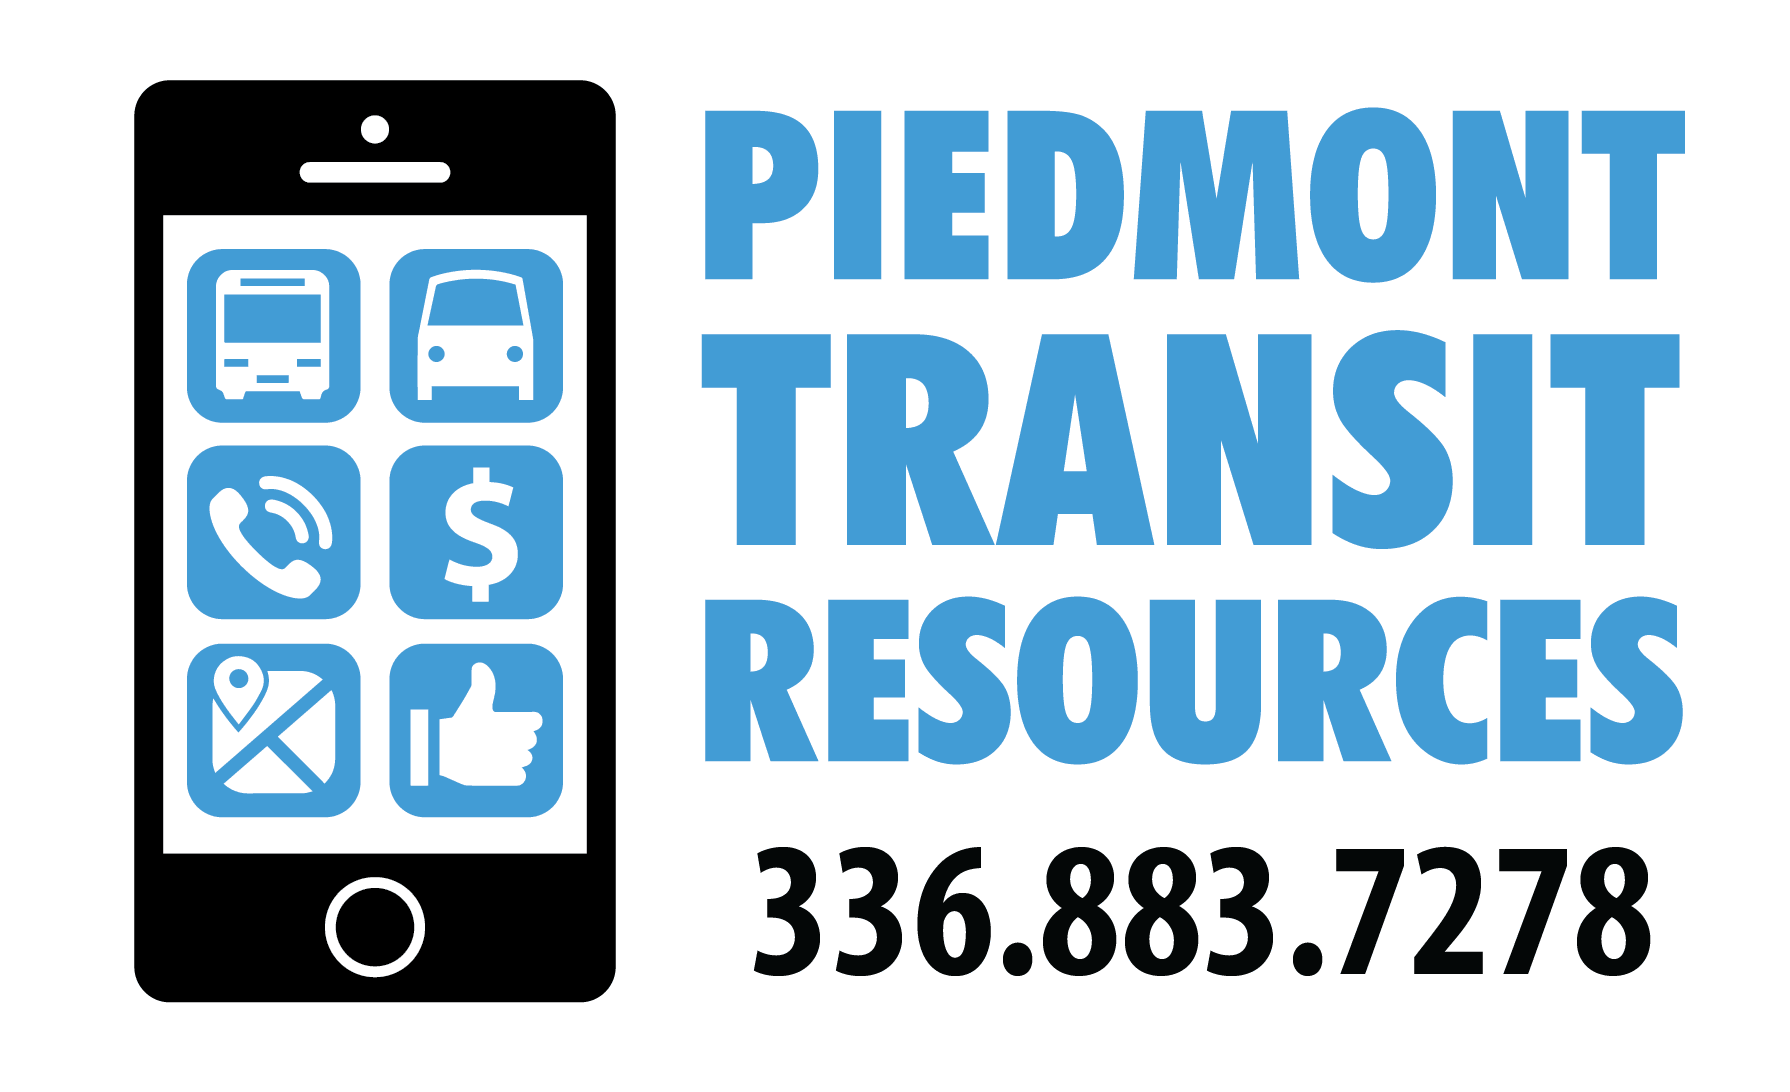 Piedmont Transit Resources Phone 336 883 7278